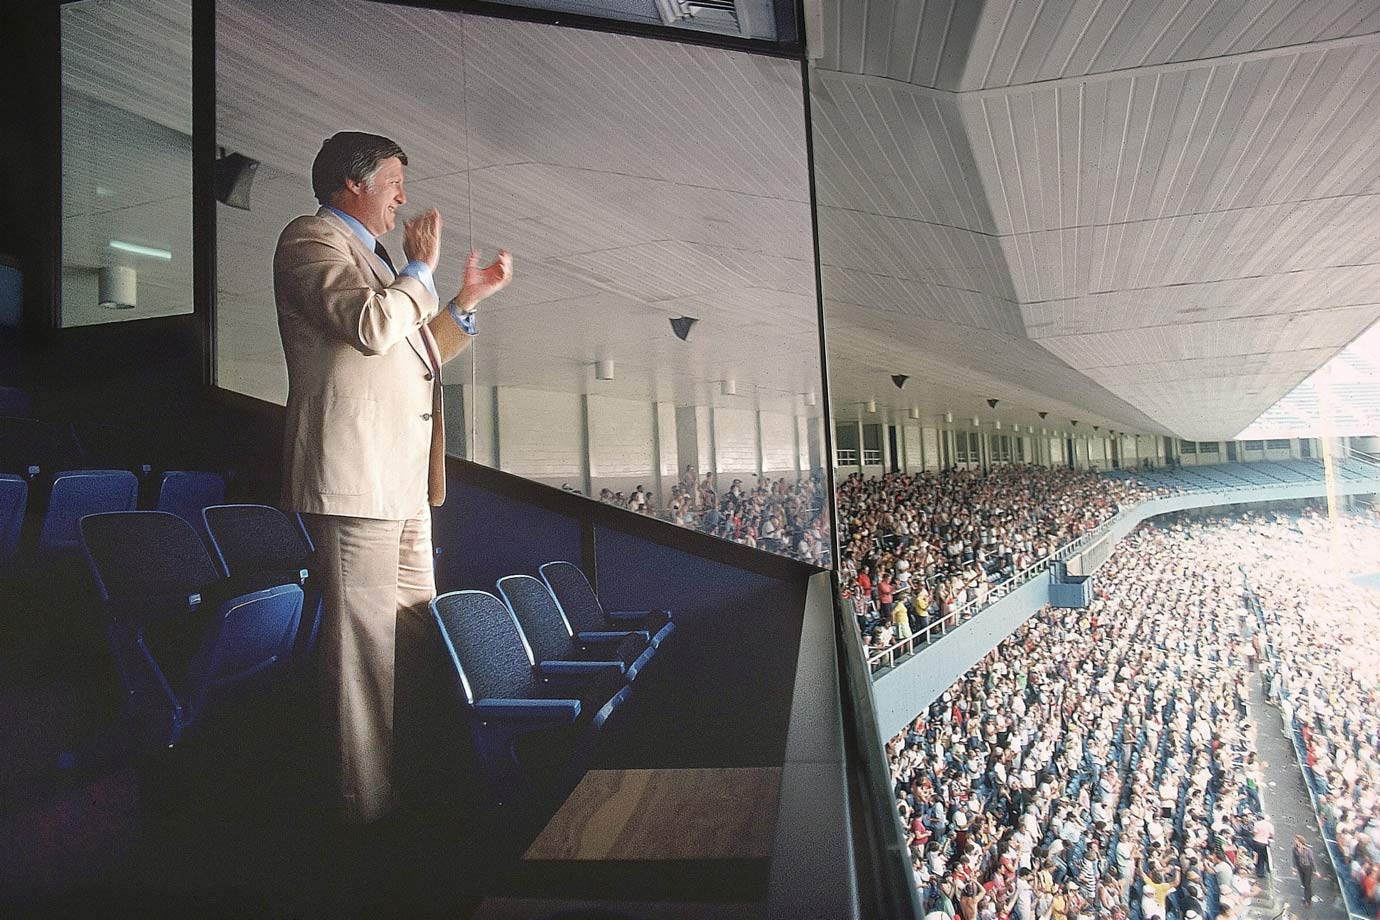 George Steinbrenner applauds from the owner's box during a game on Aug. 31, 1977 at Yankee Stadium in Bronx, N.Y.